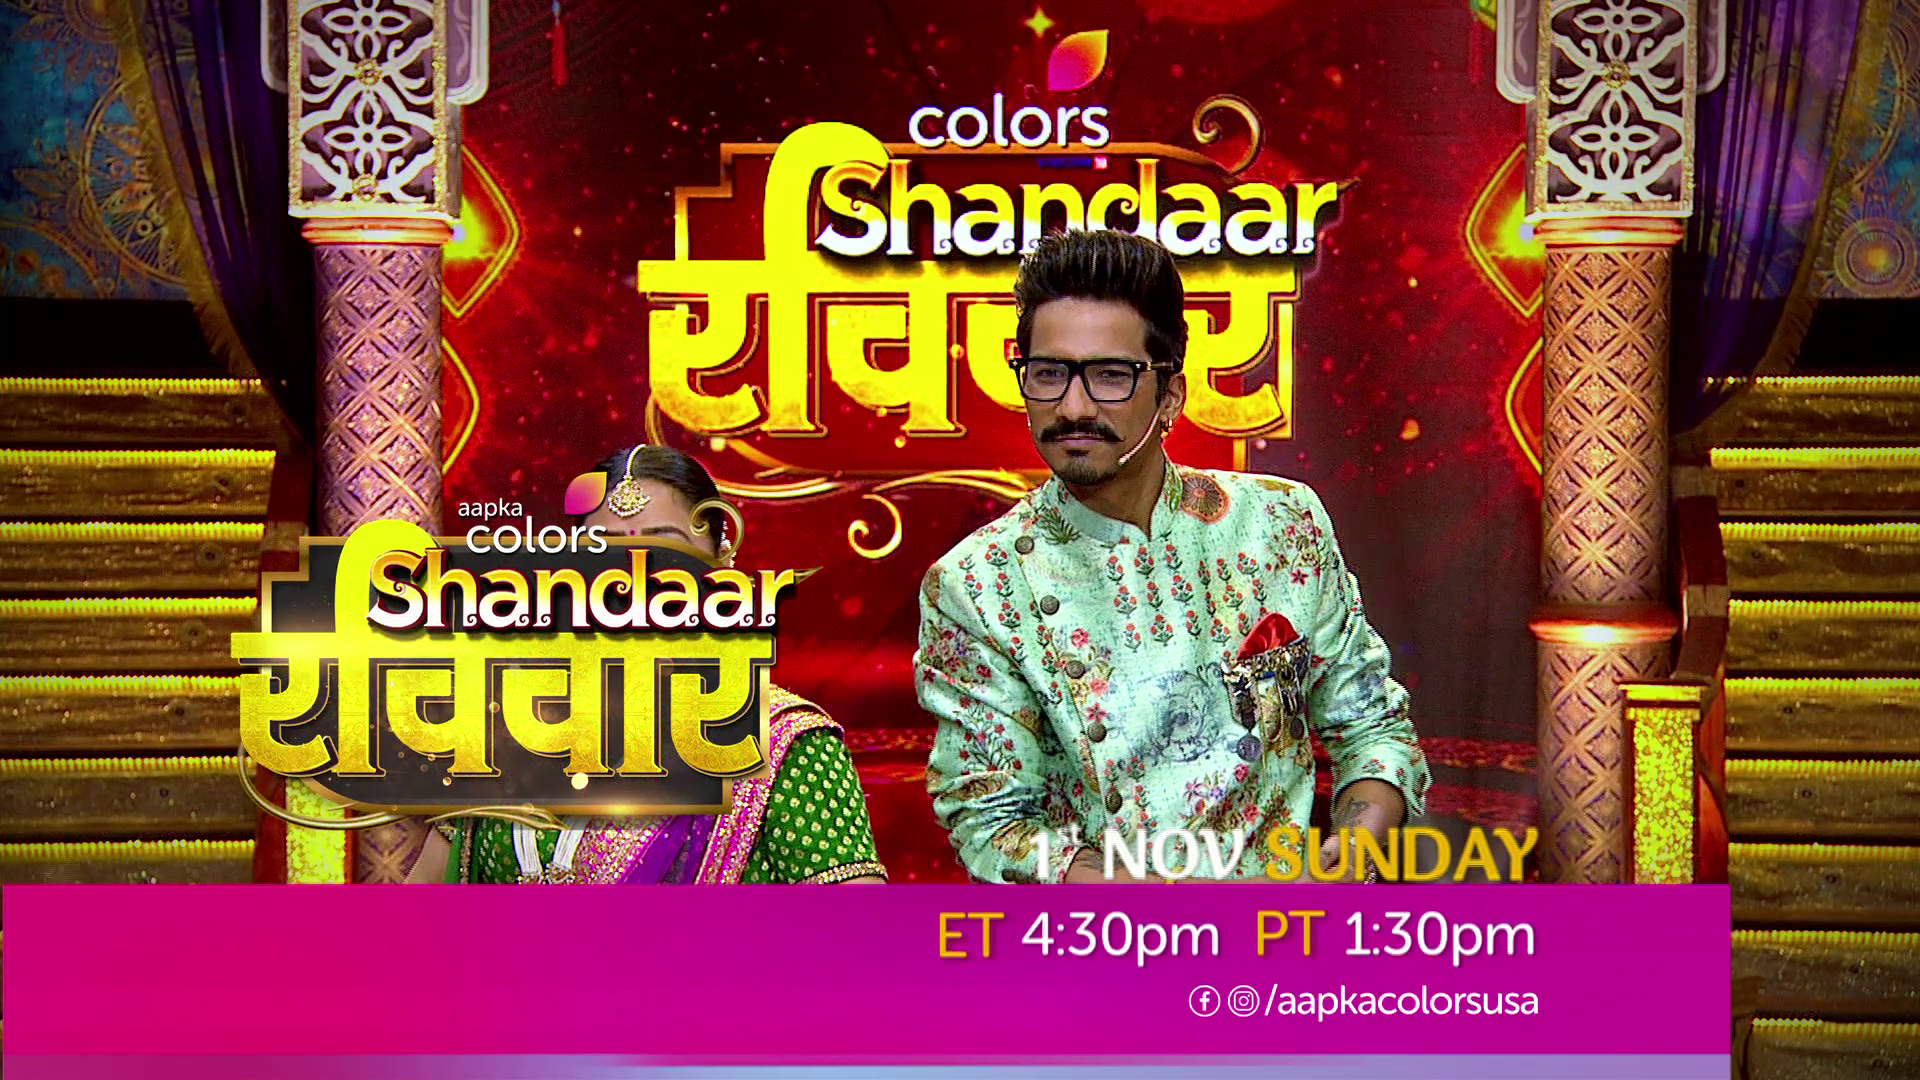 Watch Shaandaar Ravivaar 1st Nov Sunday, ET 4.30 PM  PT 1.30 pm